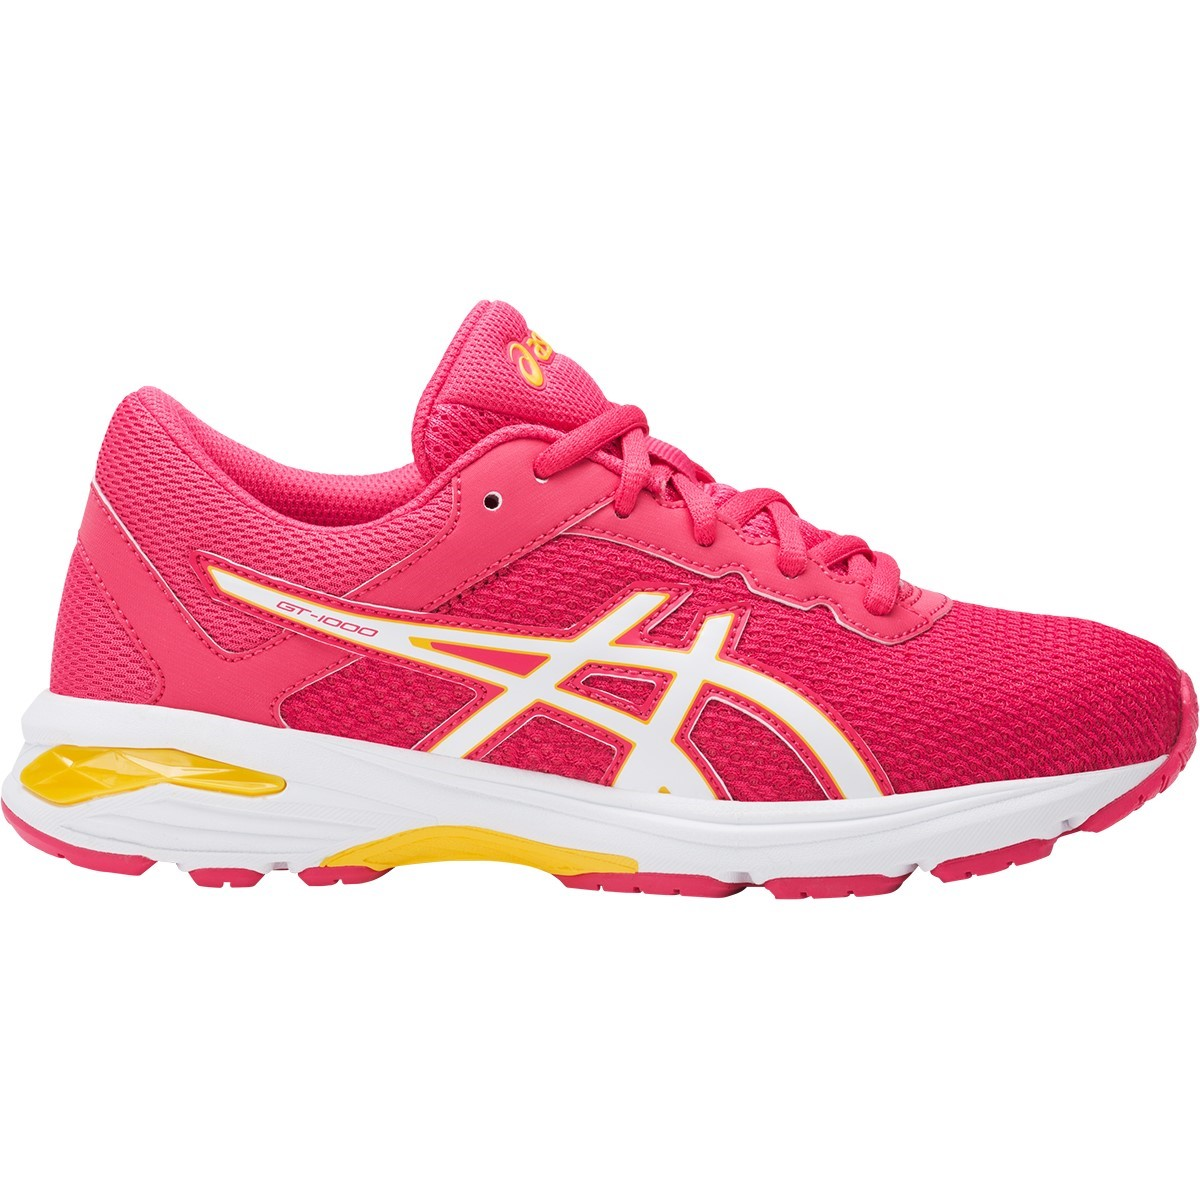 chaussures de séparation 1feb0 32cac Asics Gel GT-1000 6 GS - Kids Girls Running Shoes